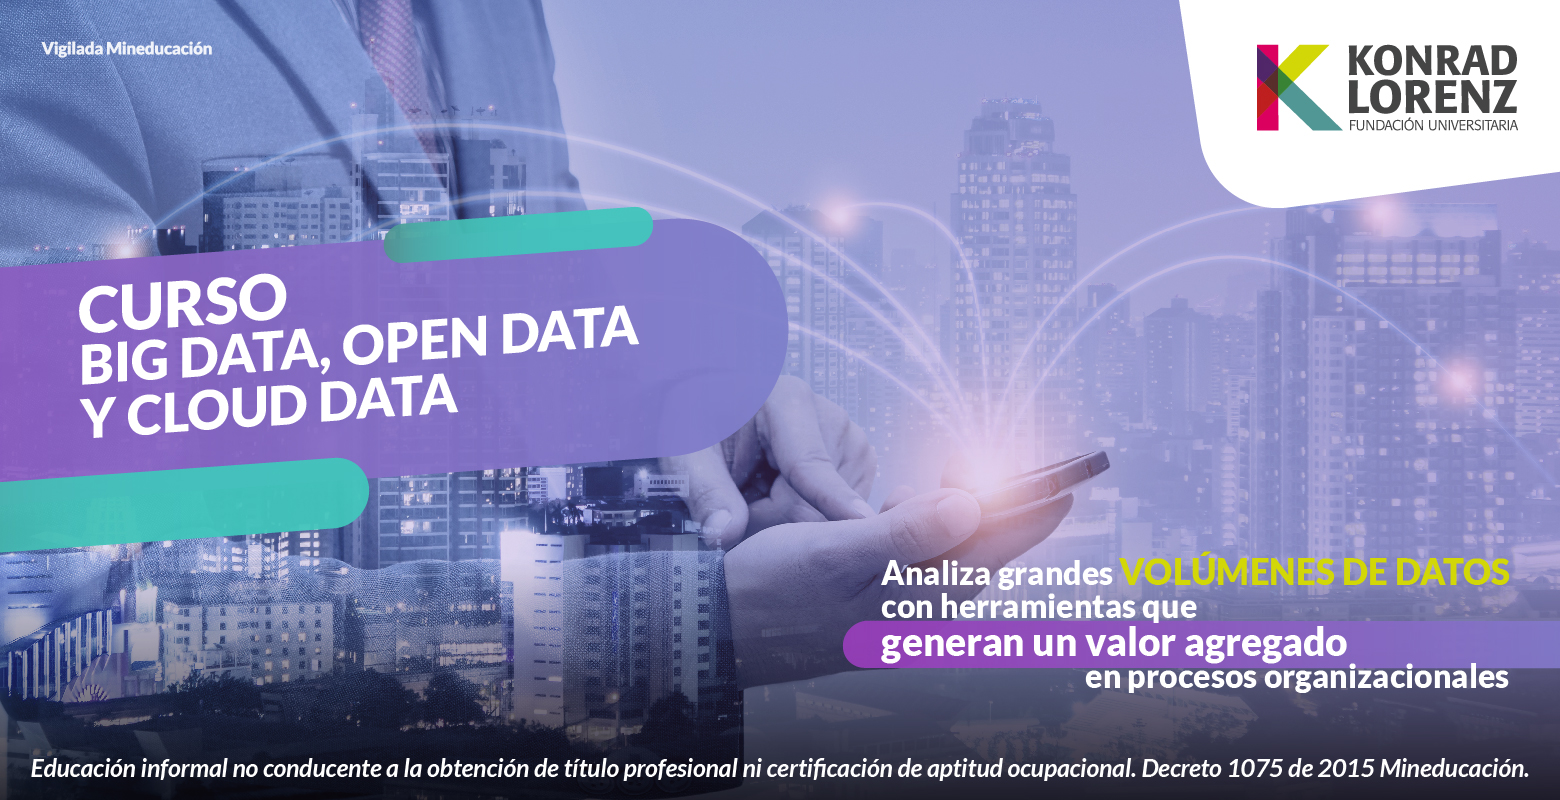 Curso de Big Data, Open Data y Cloud Data